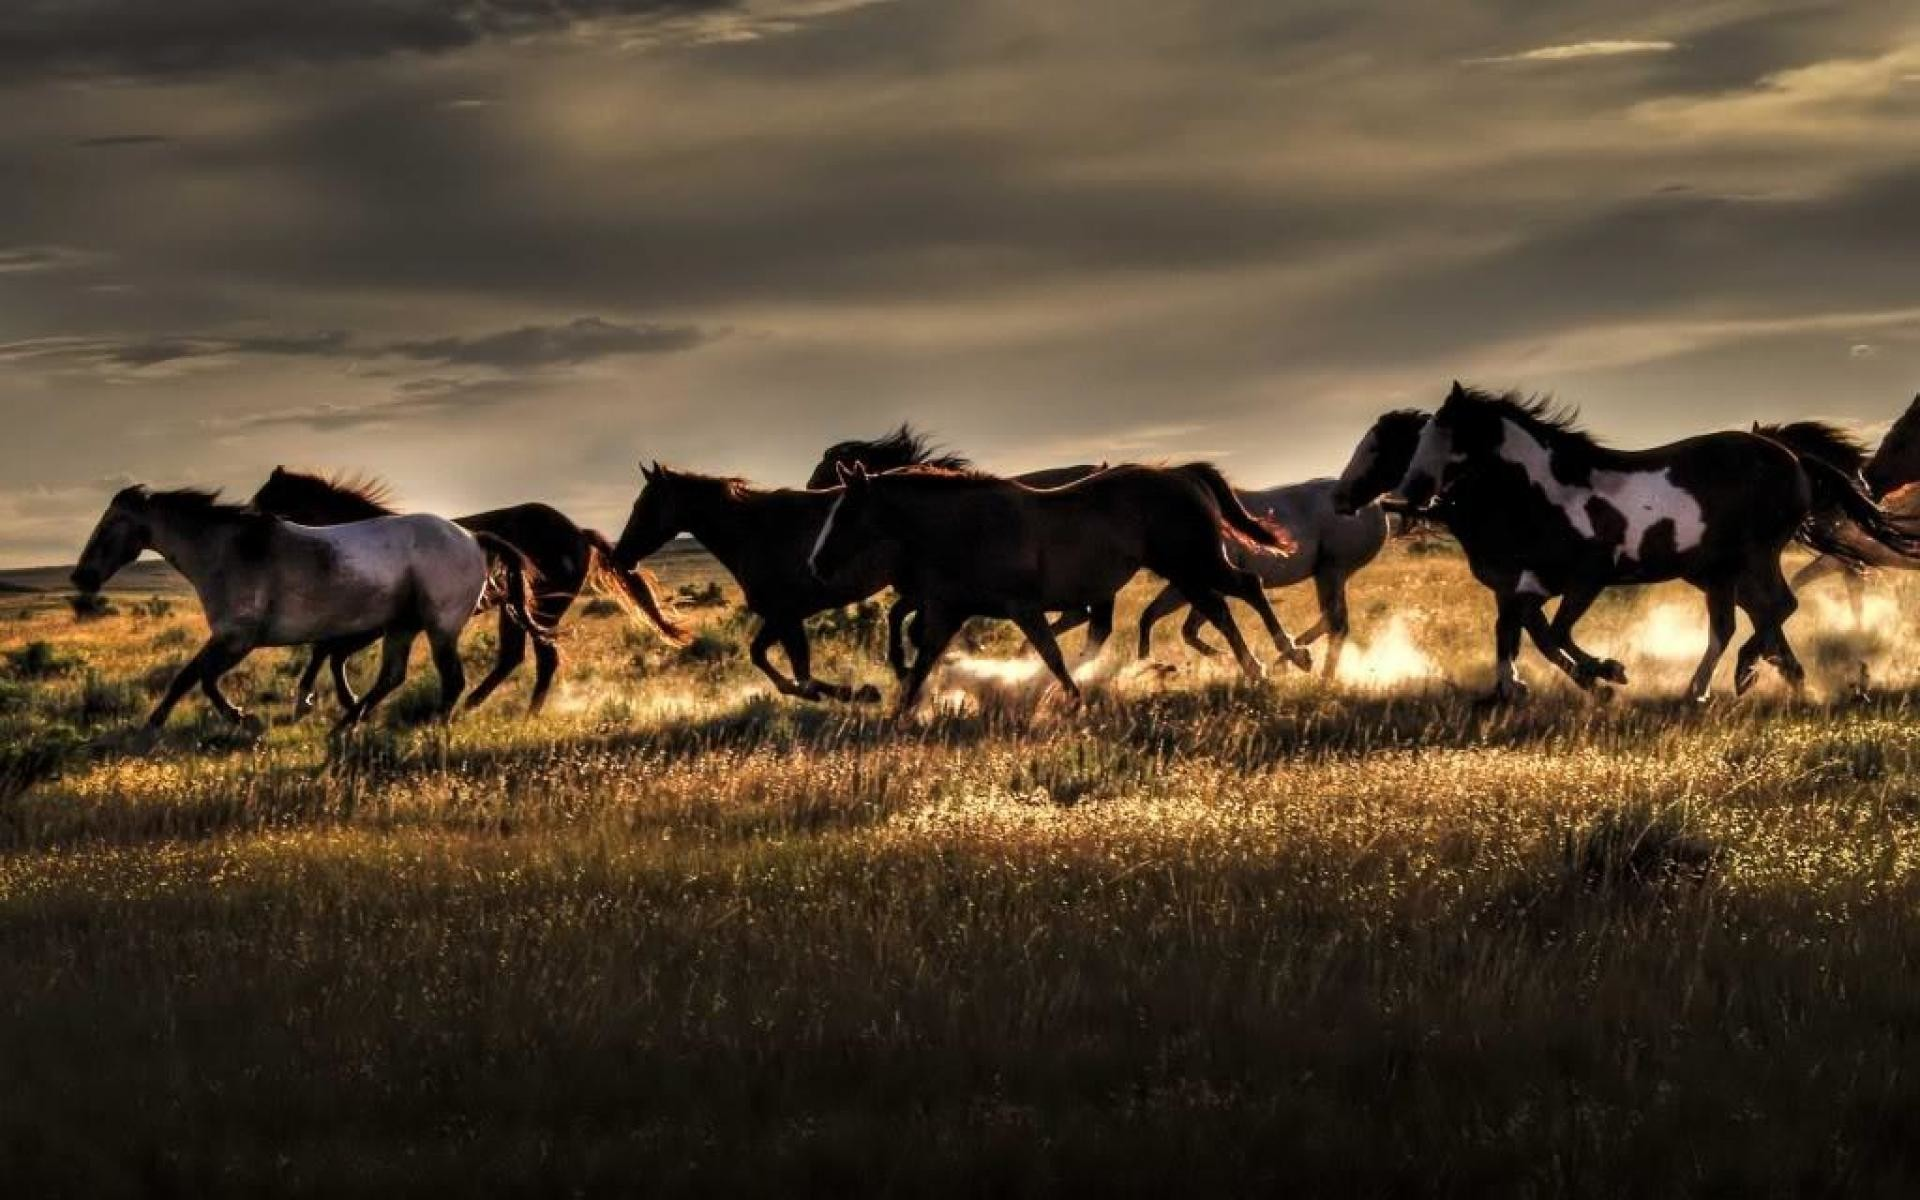 1920x1200 Download fantasy horses wallpaper wild horse